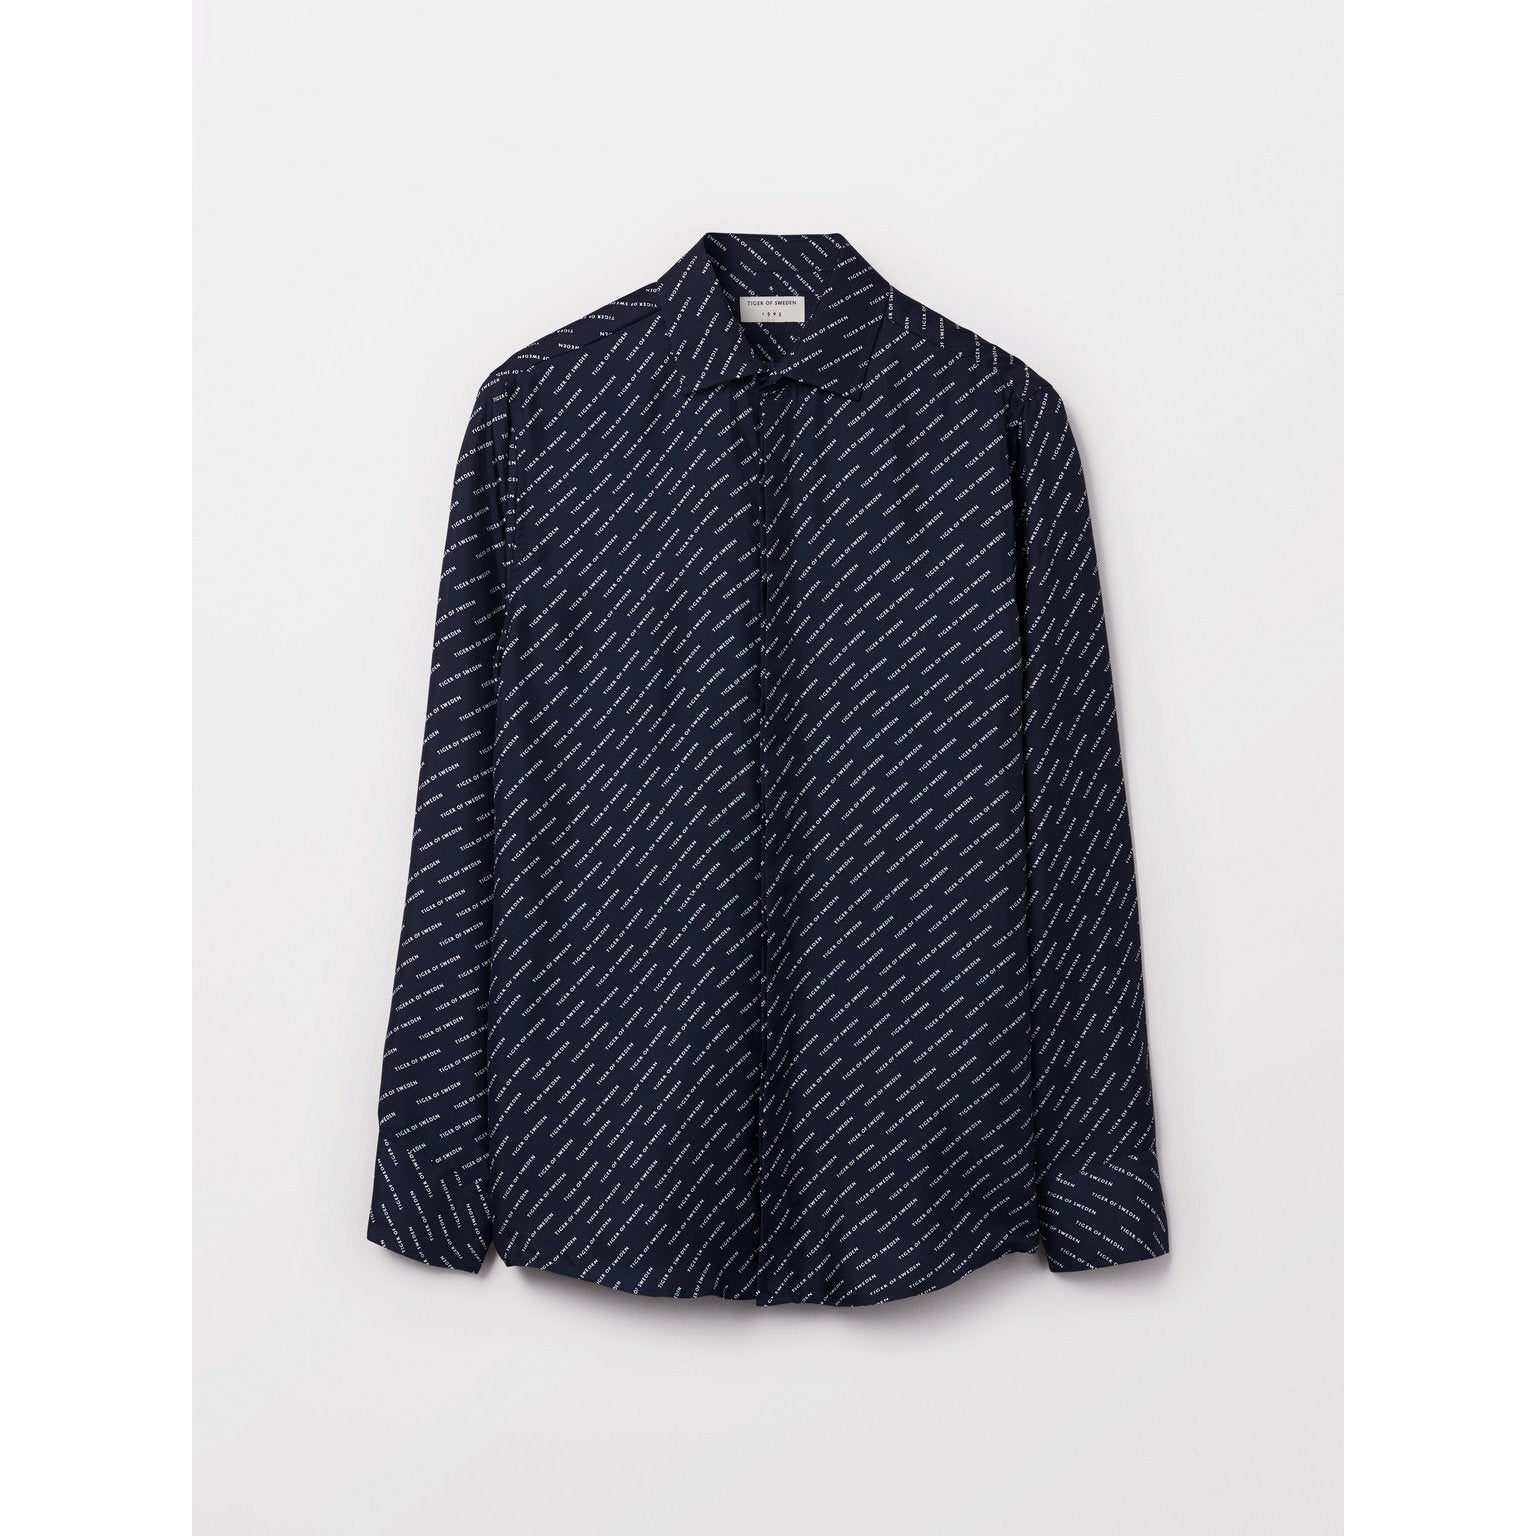 Tiger Of Sweden Ferris Shirt Navy - Mojo Independent Store